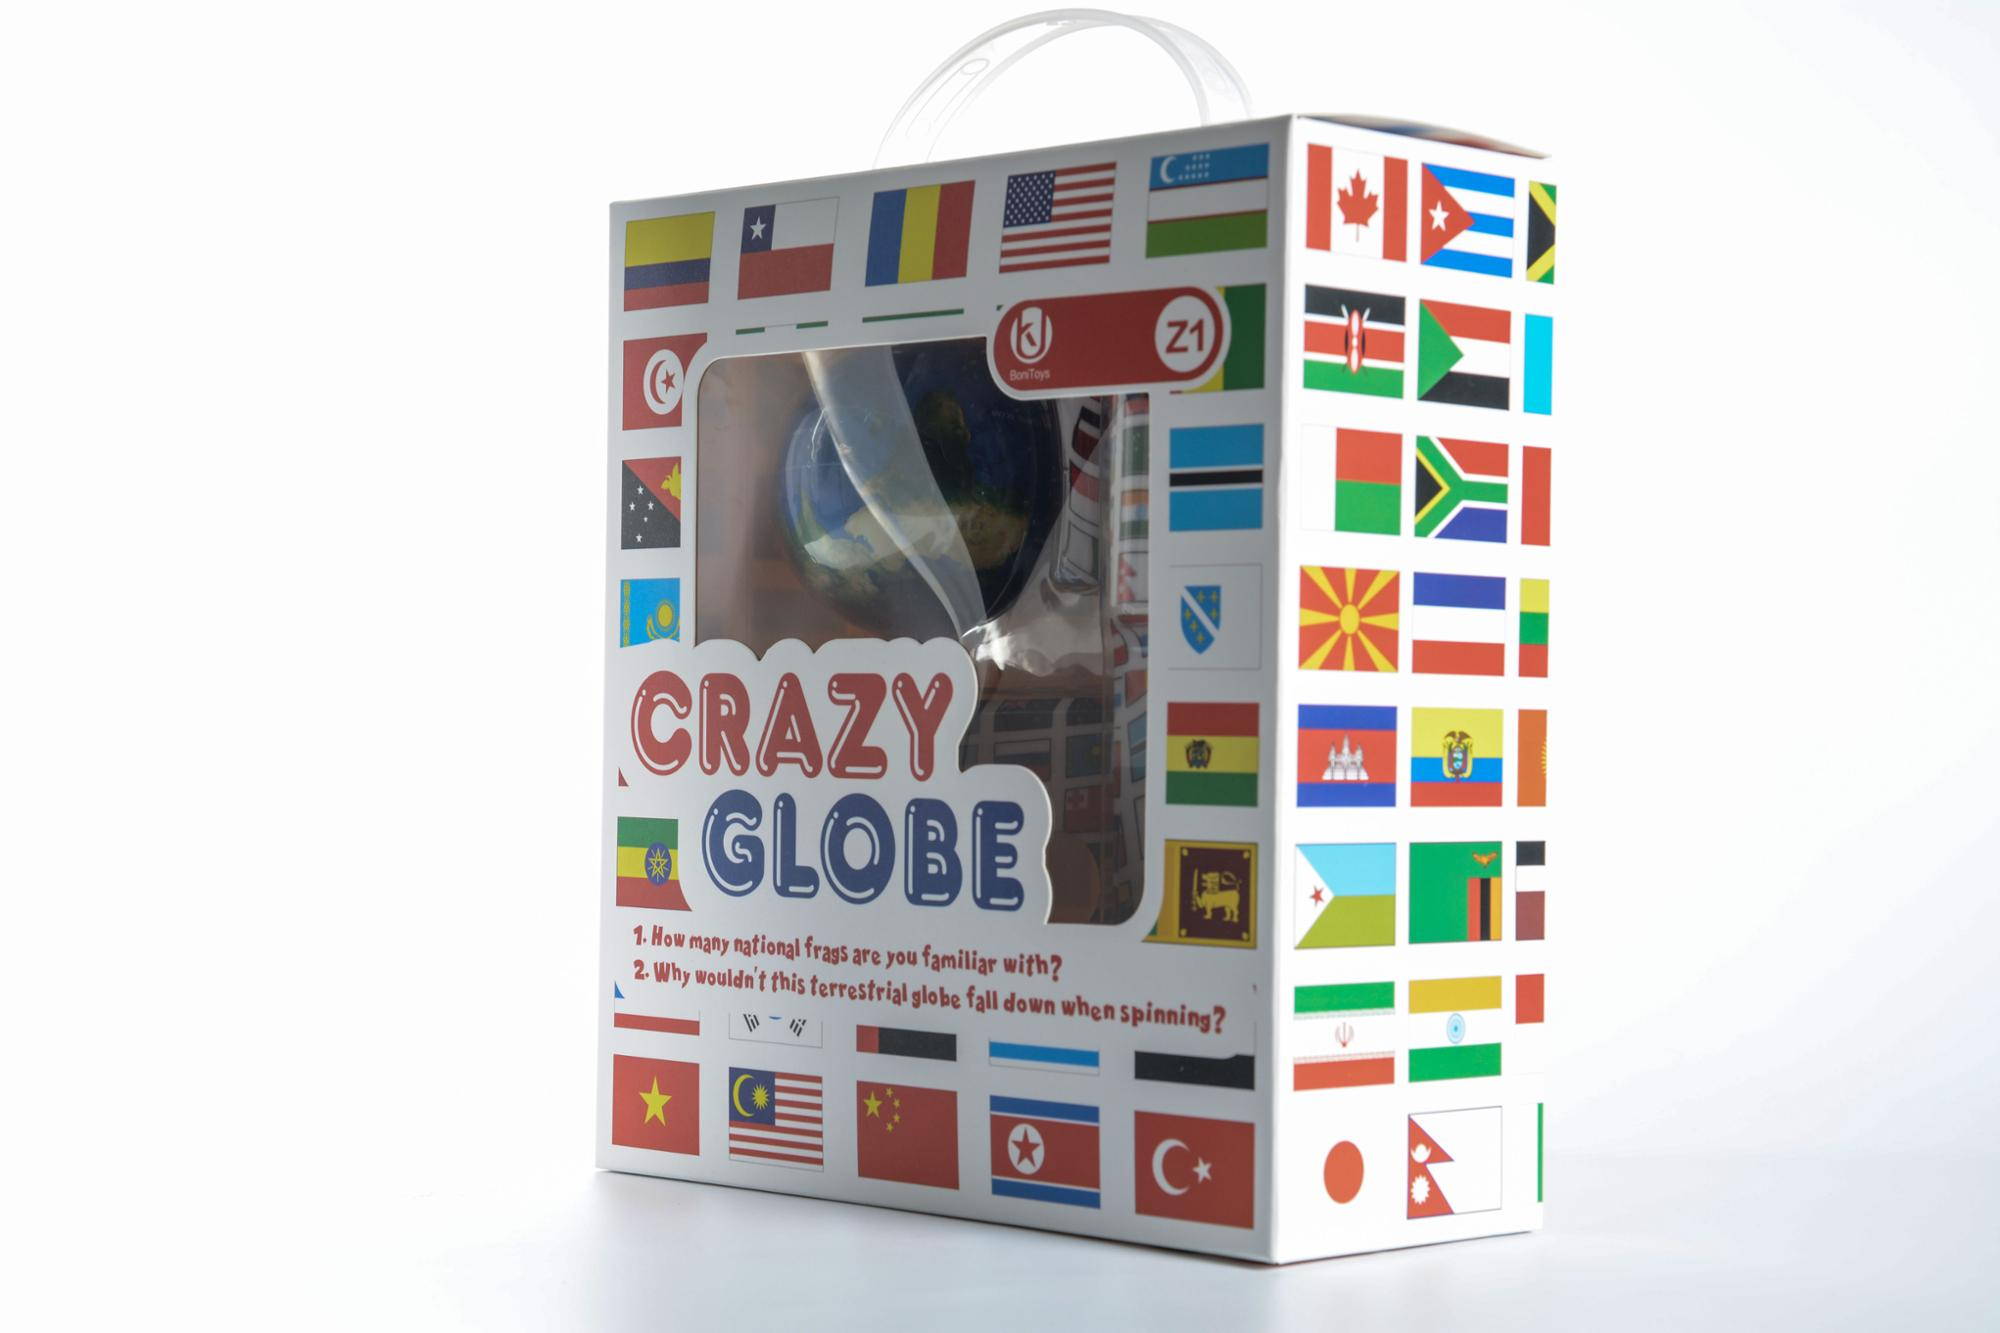 Bonitoys 2018 Newest Product Z1 Crazy Globe Creative Crazy rotation ball toys for kids